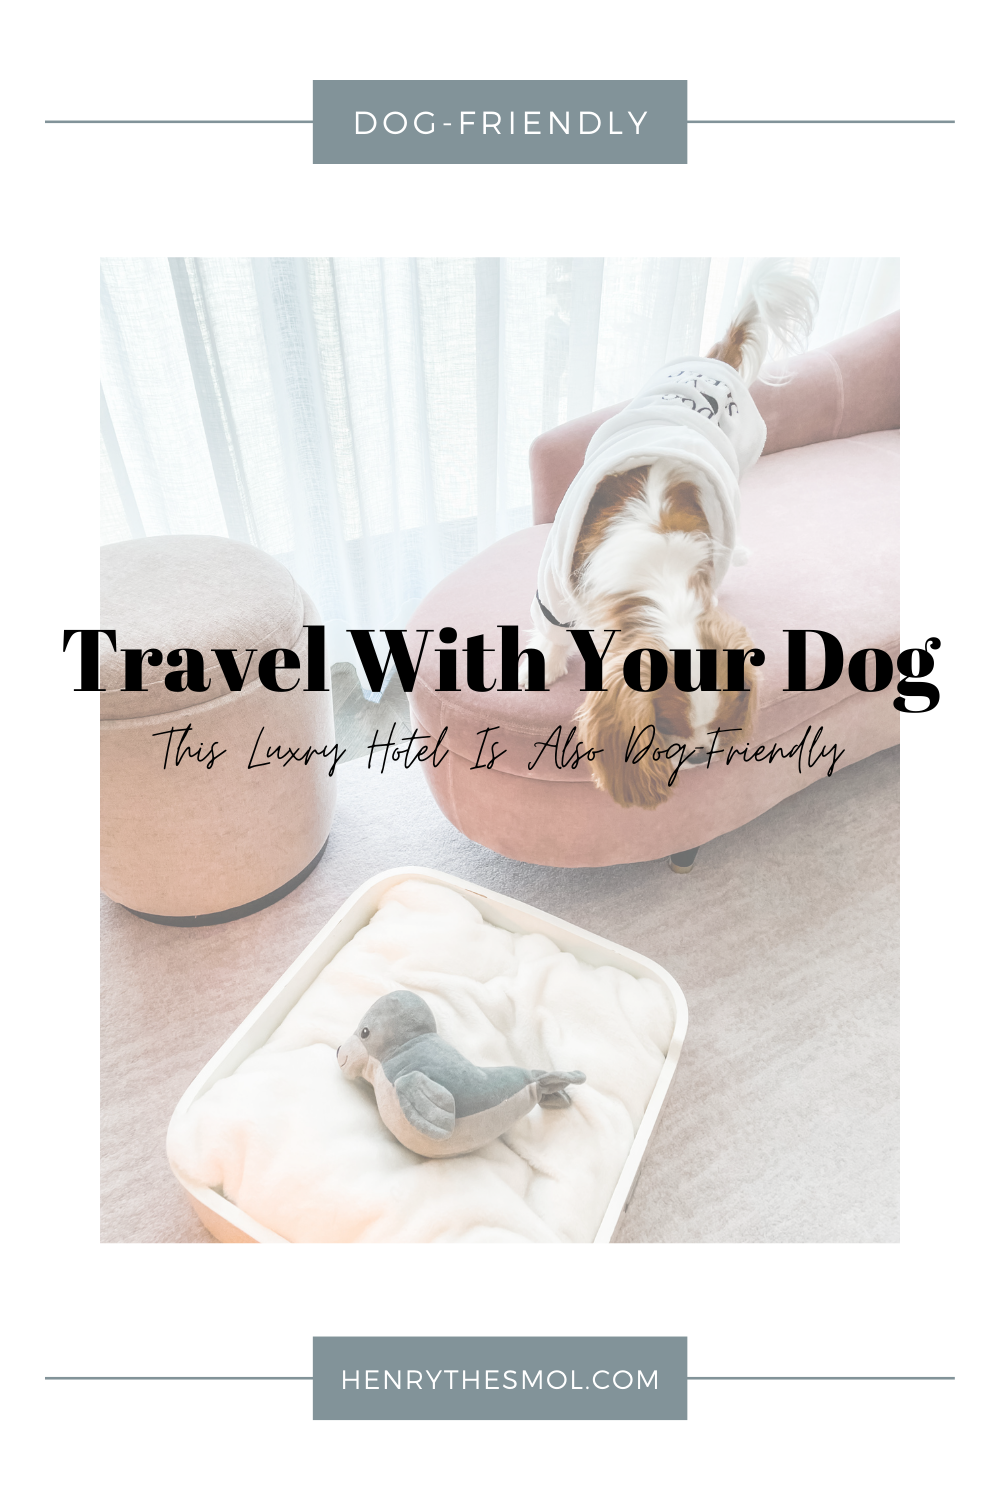 Our Dog-Friendly Staycation At The Four Seasons Hotel